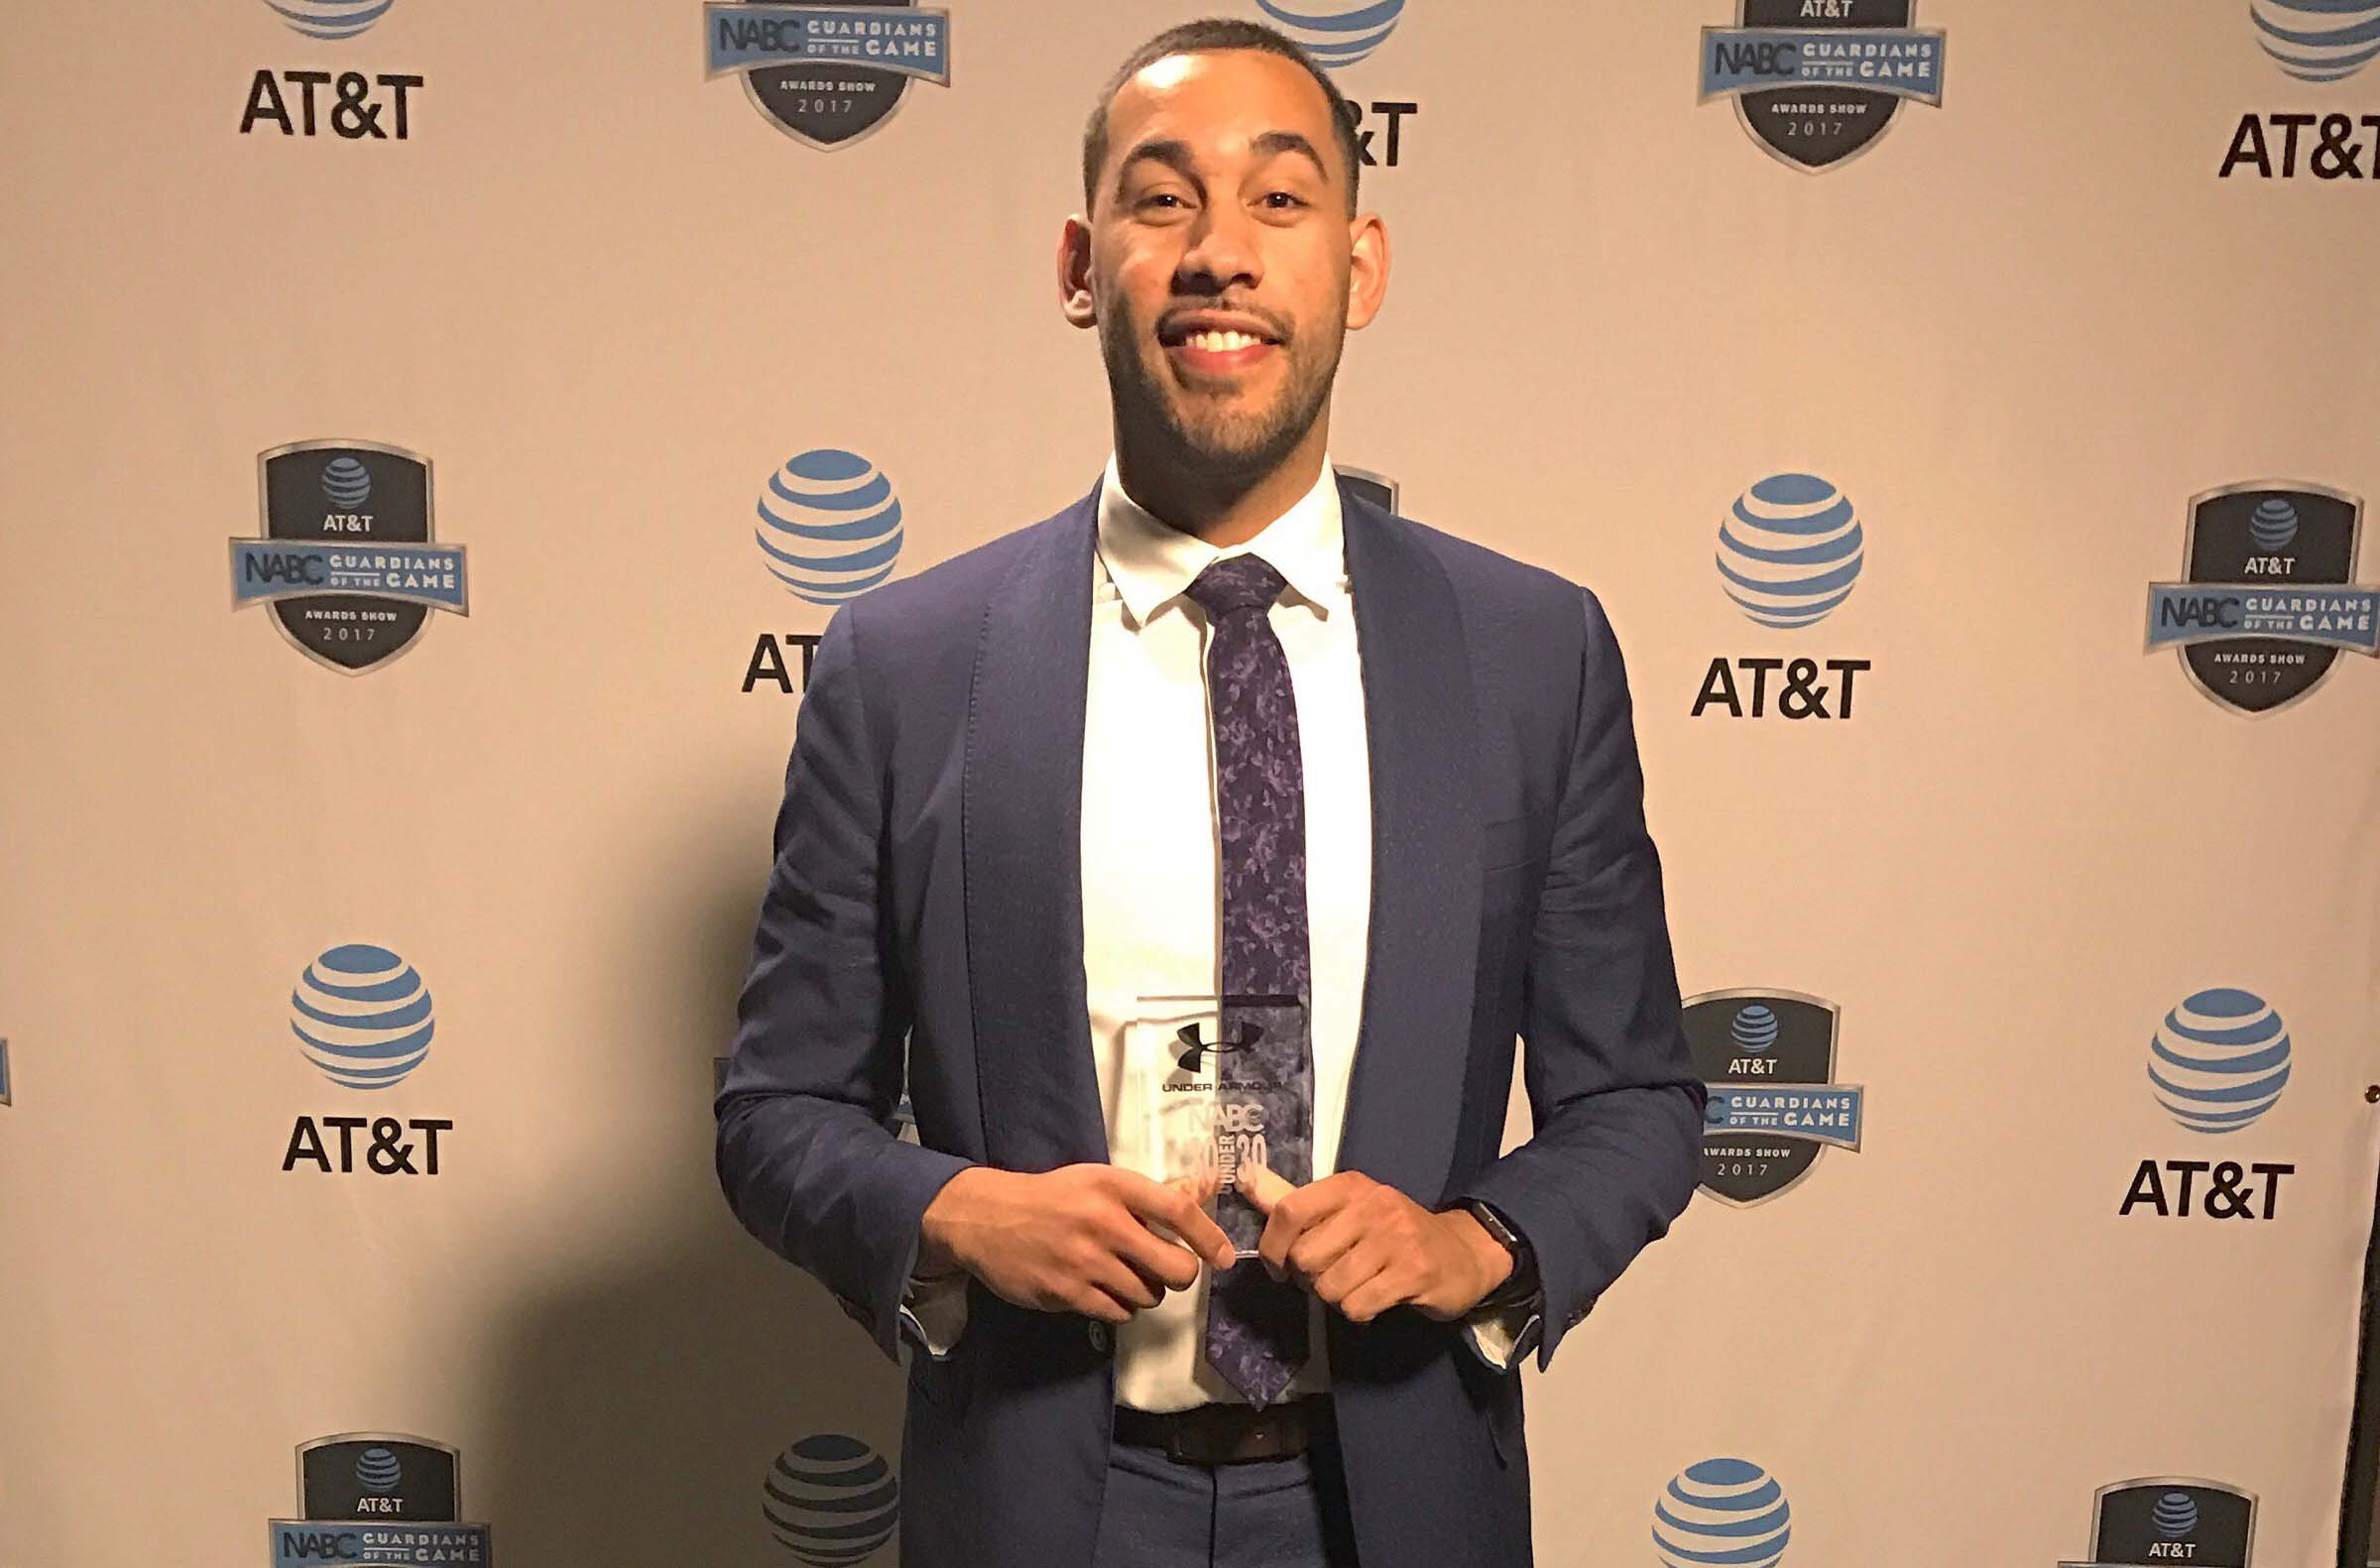 Alumnus and current men's basketball assistant coach Drew Valentine received an award for being named 2017 Under Armor 30-under-30 team.